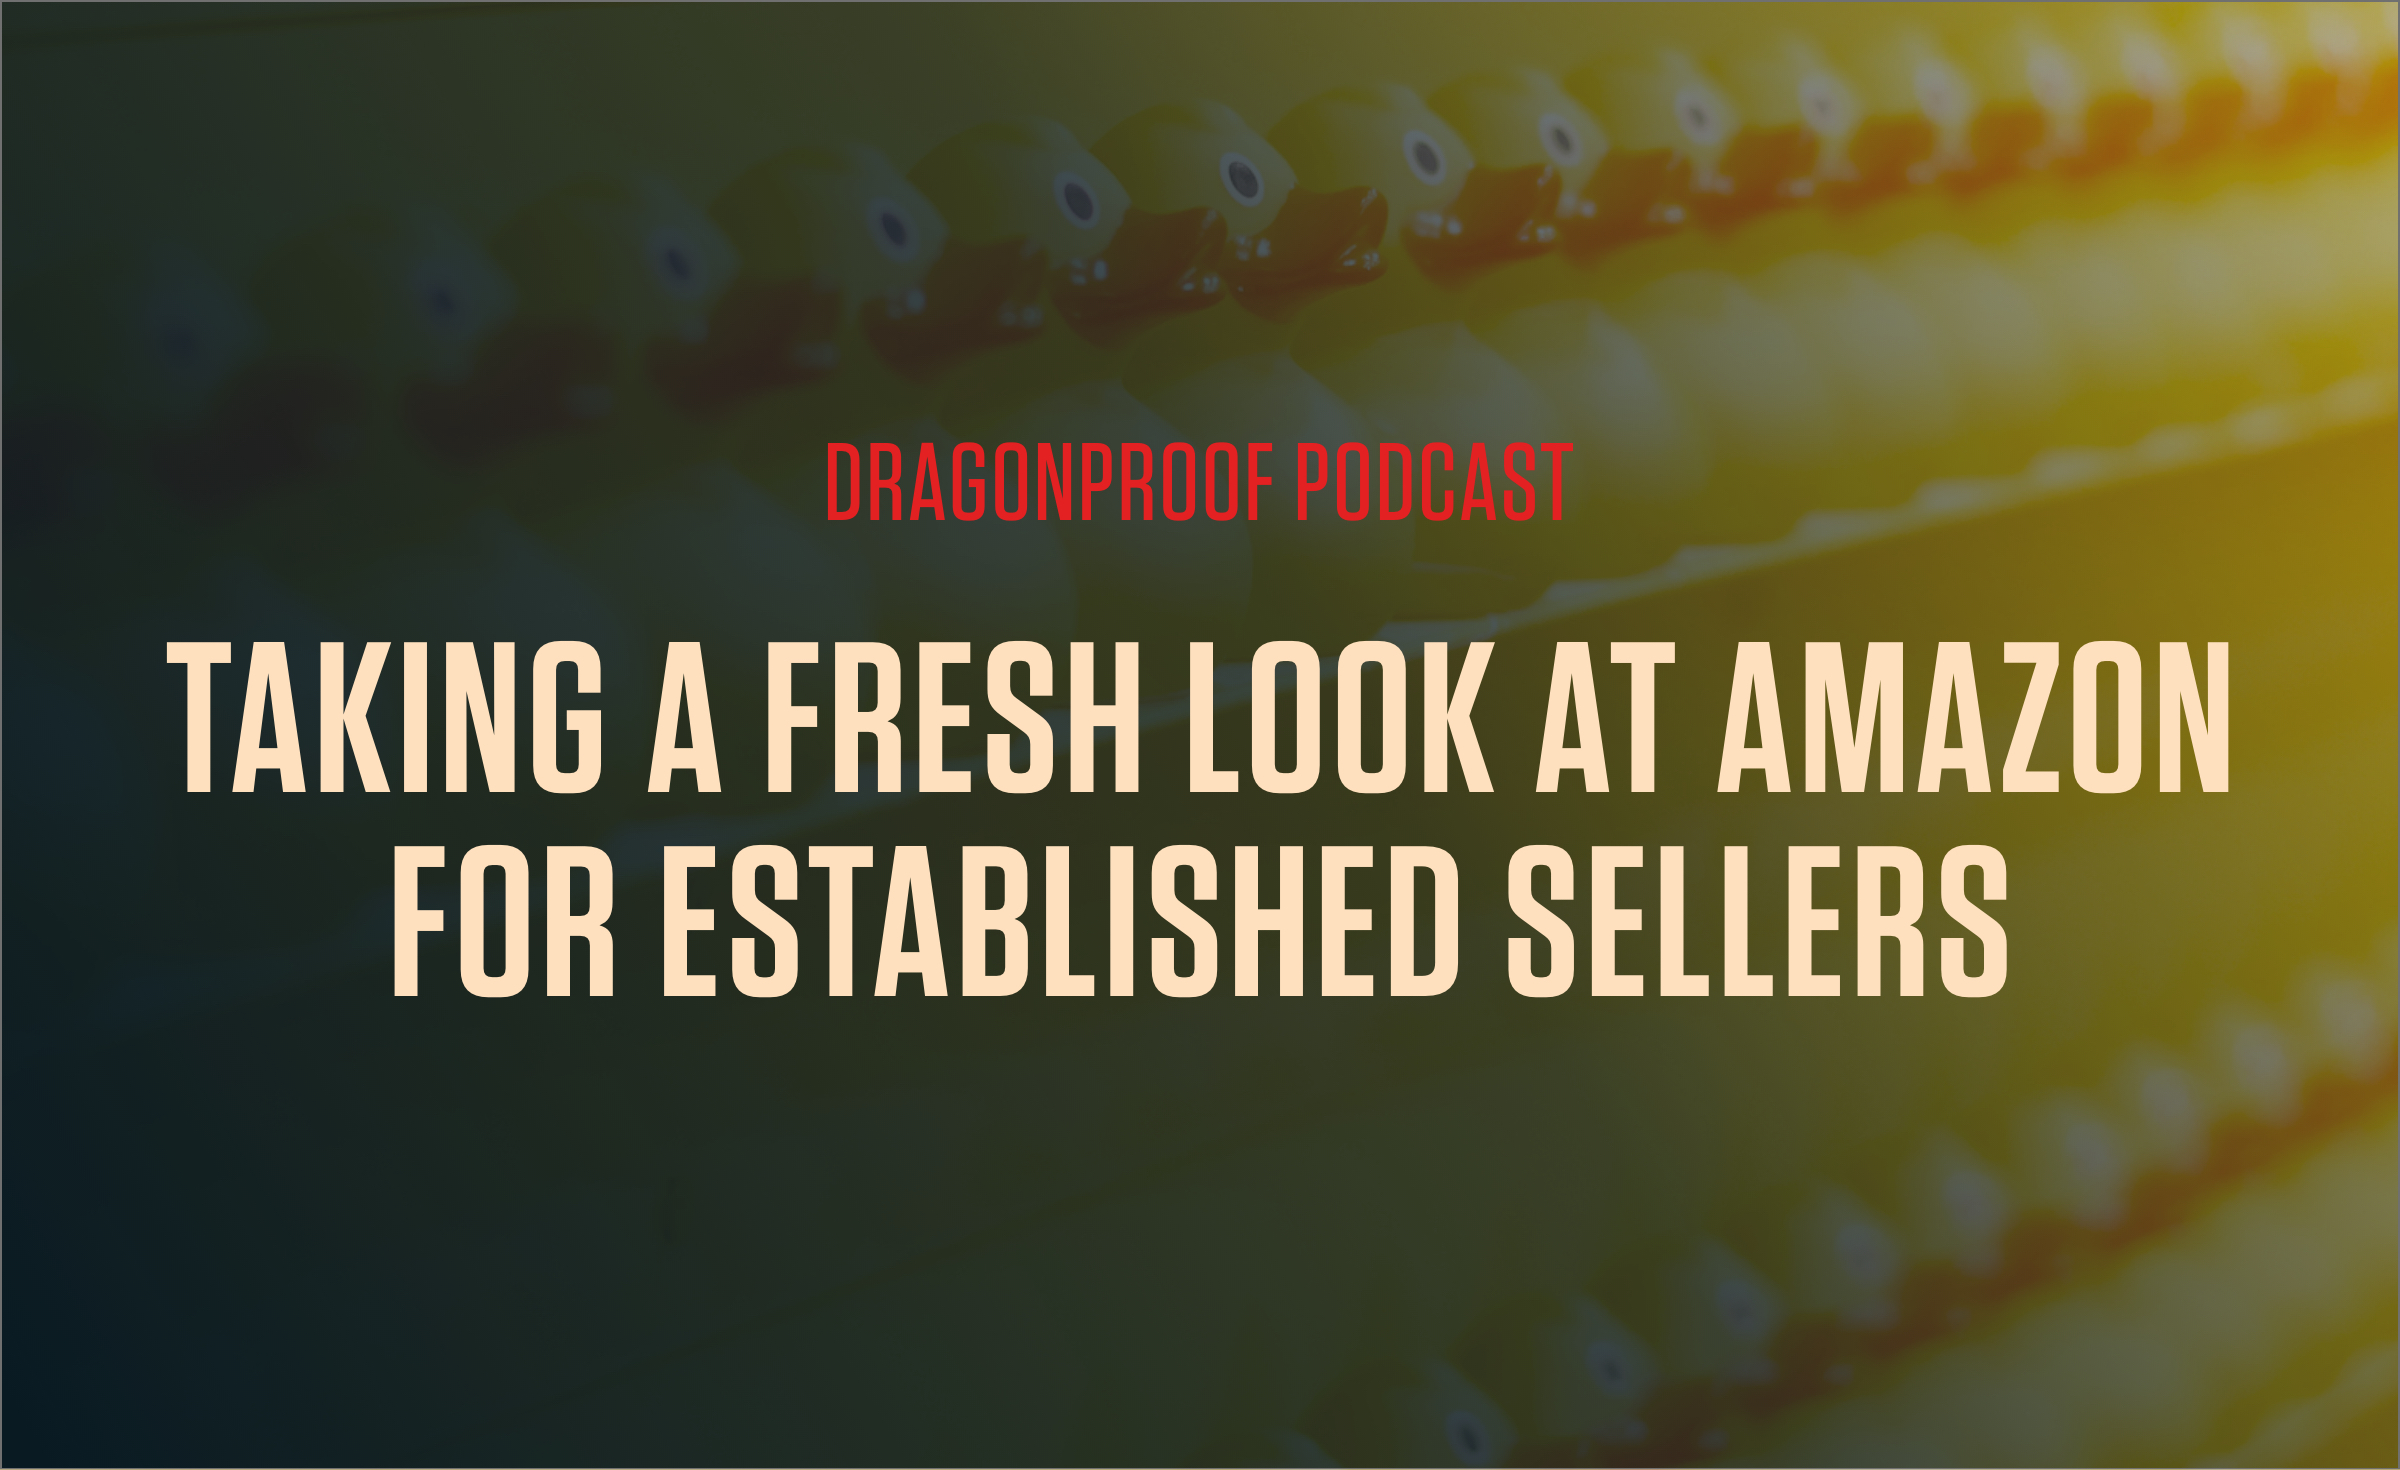 Dragonproof Podcast Title Card - Taking a Fresh Look at Amazon for Established Sellers